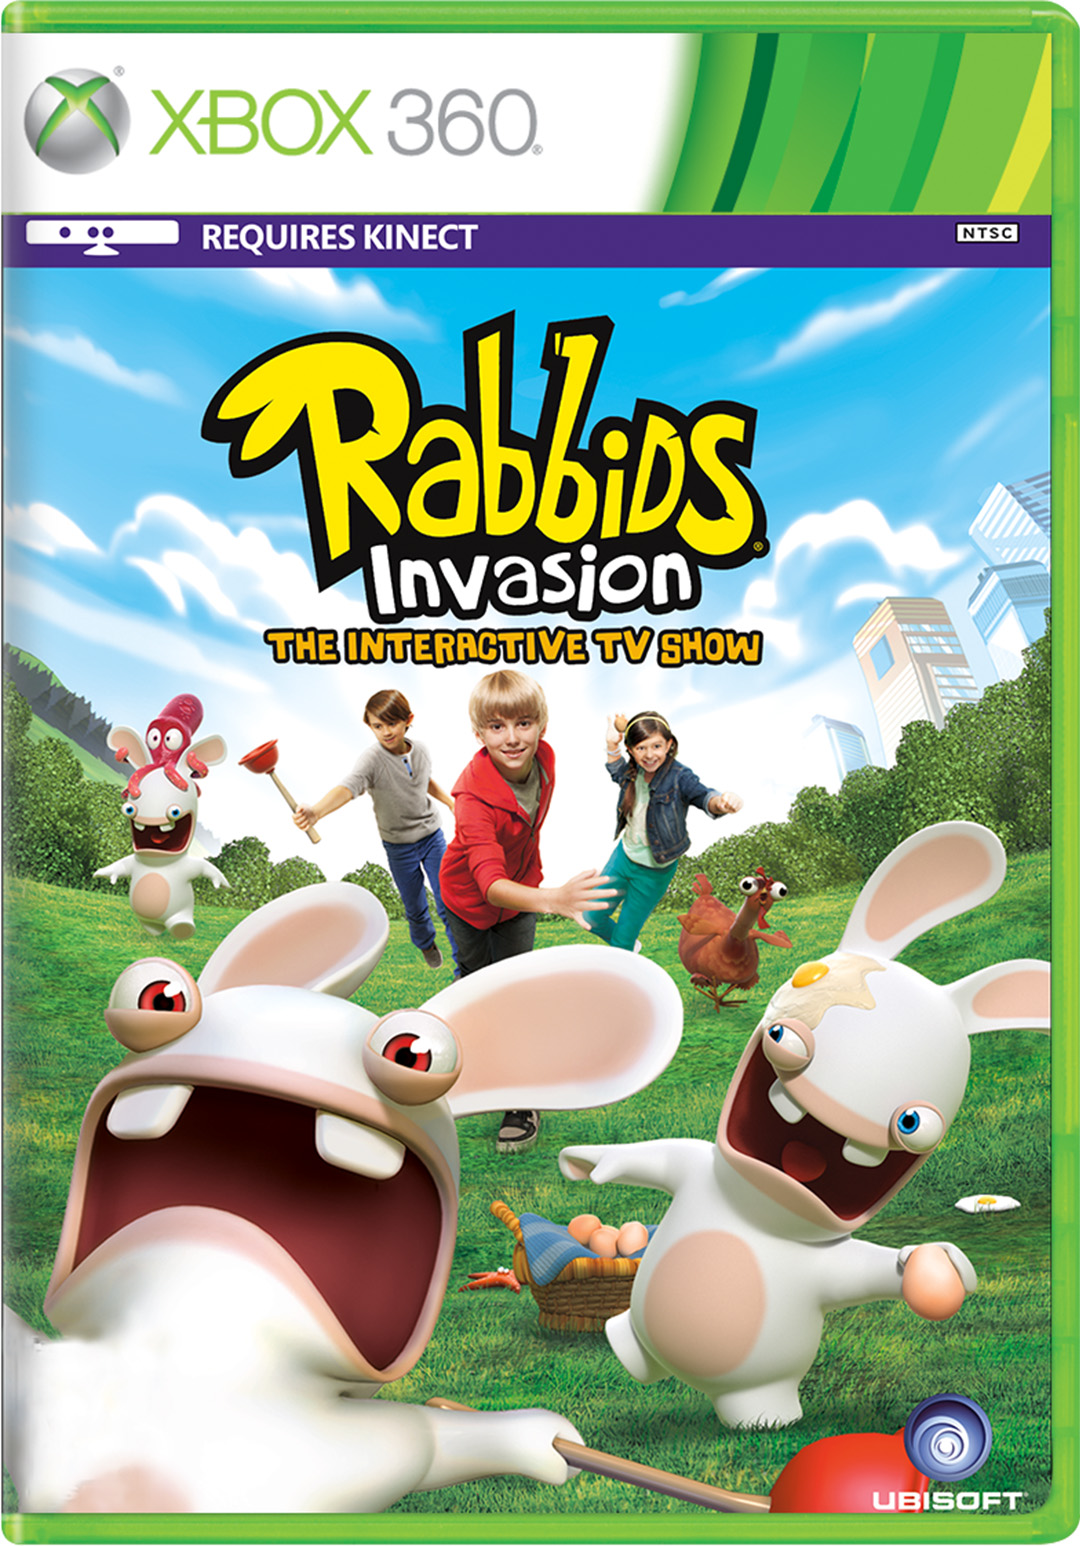 Rabbids Invasion: The Interactive TV Show for Xbox 360